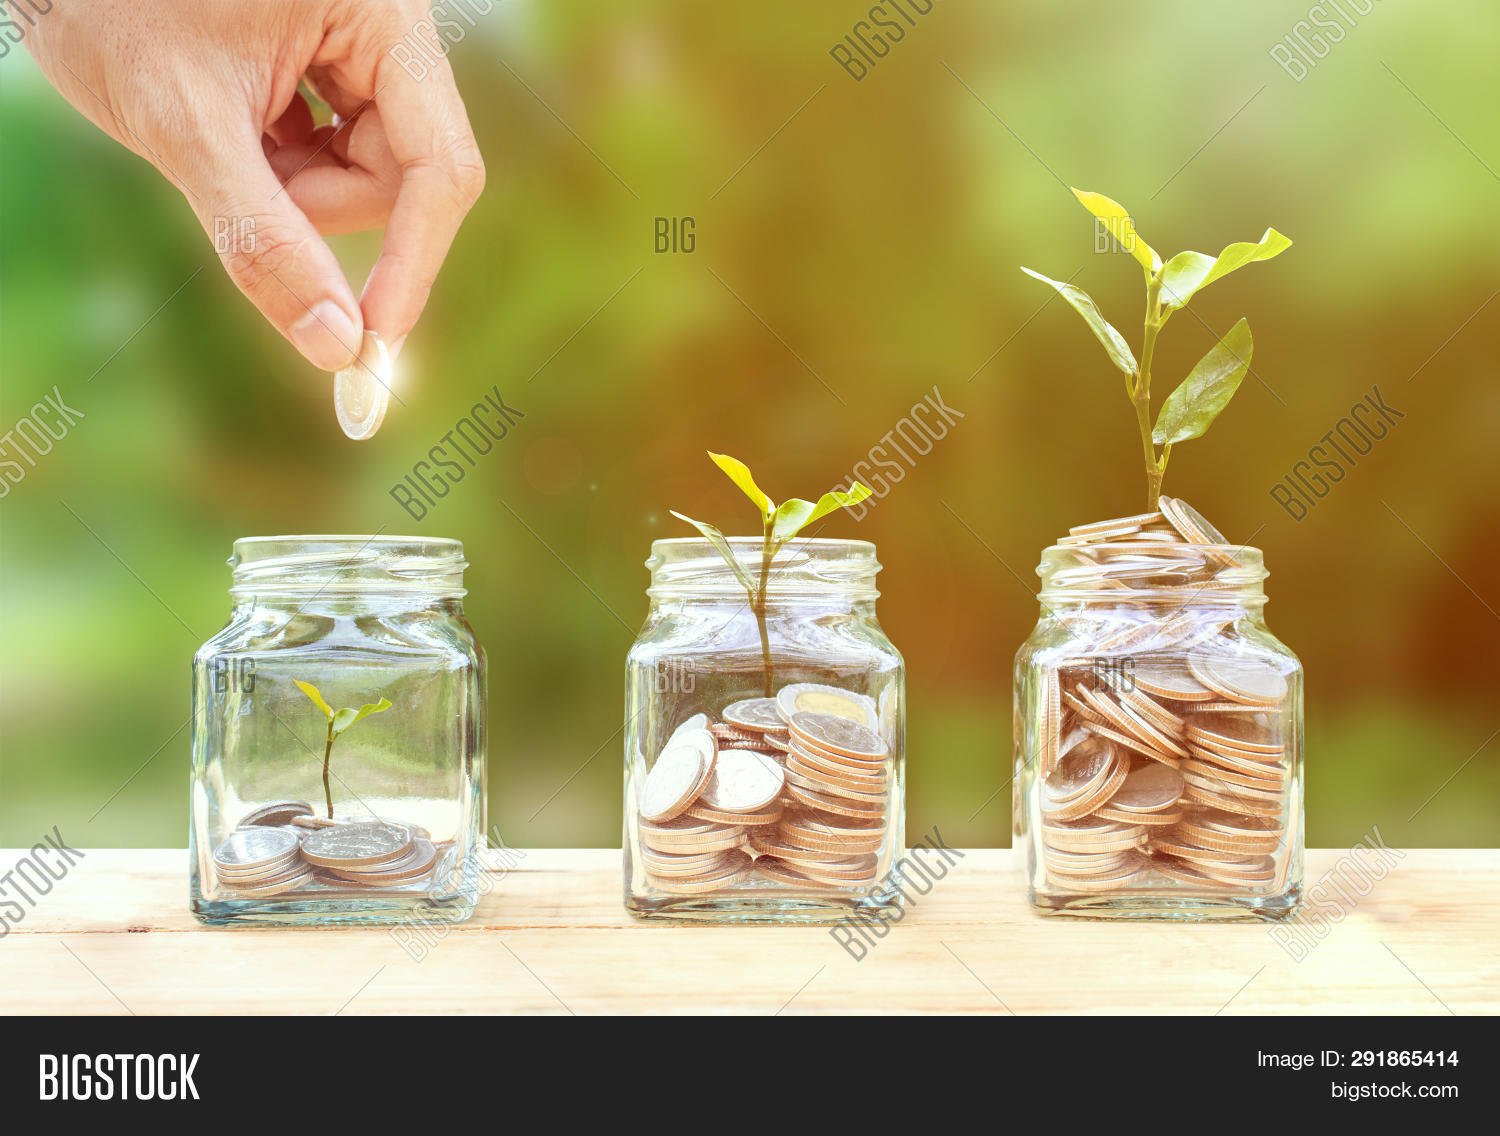 Money Savings, Investment, Making Money For Future, Financial Wealth Management Concept. A Man Hand